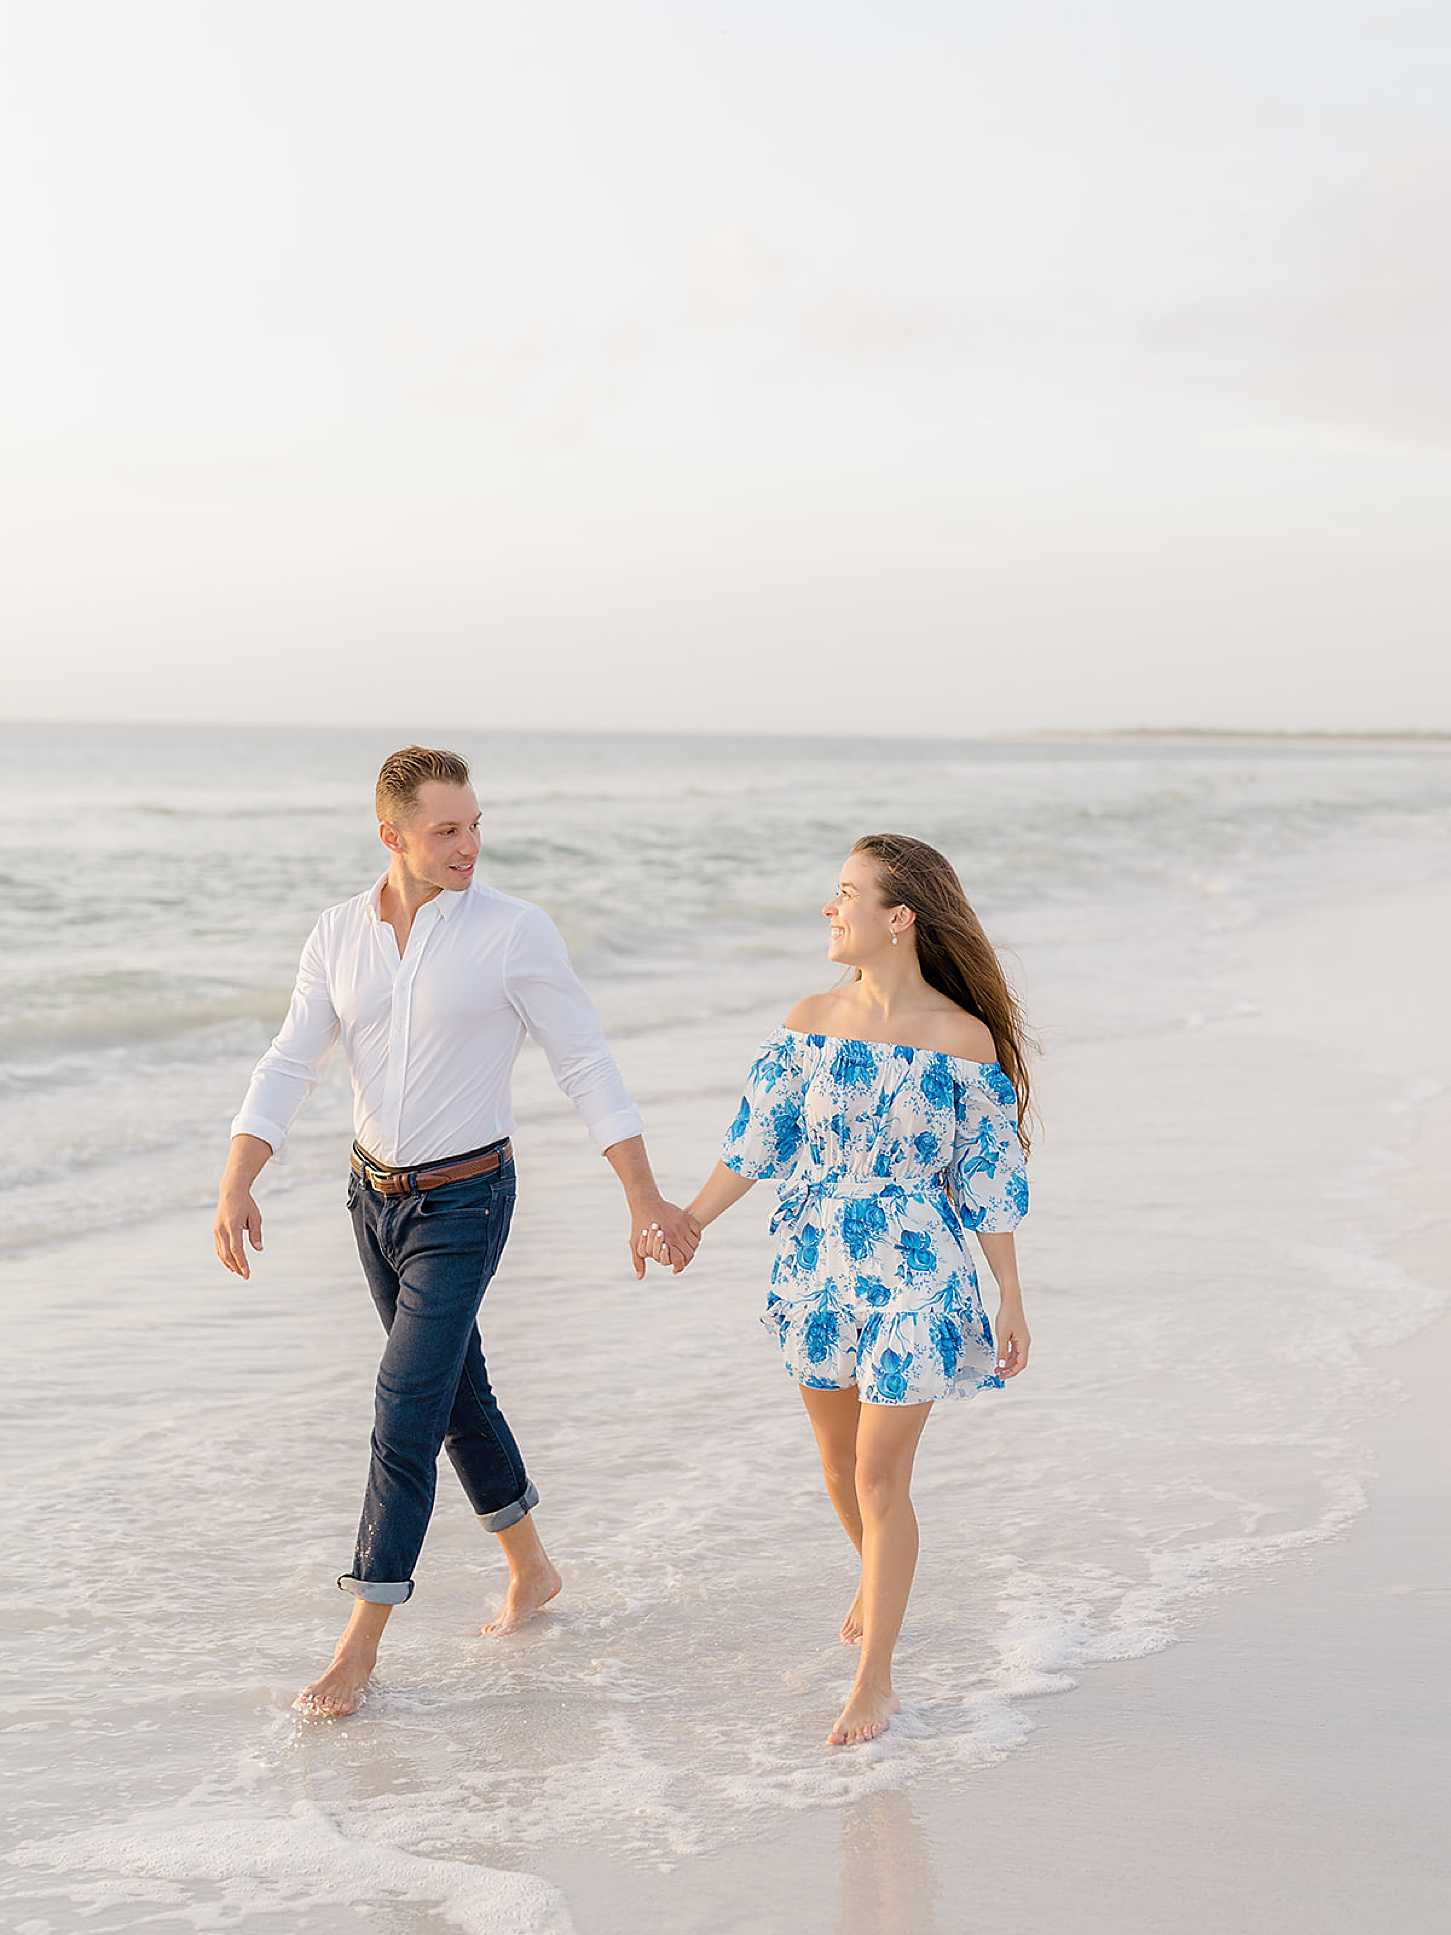 Palm Beach Florida Engagement Photography by Magdalena Studios Lyn and Paul 0025